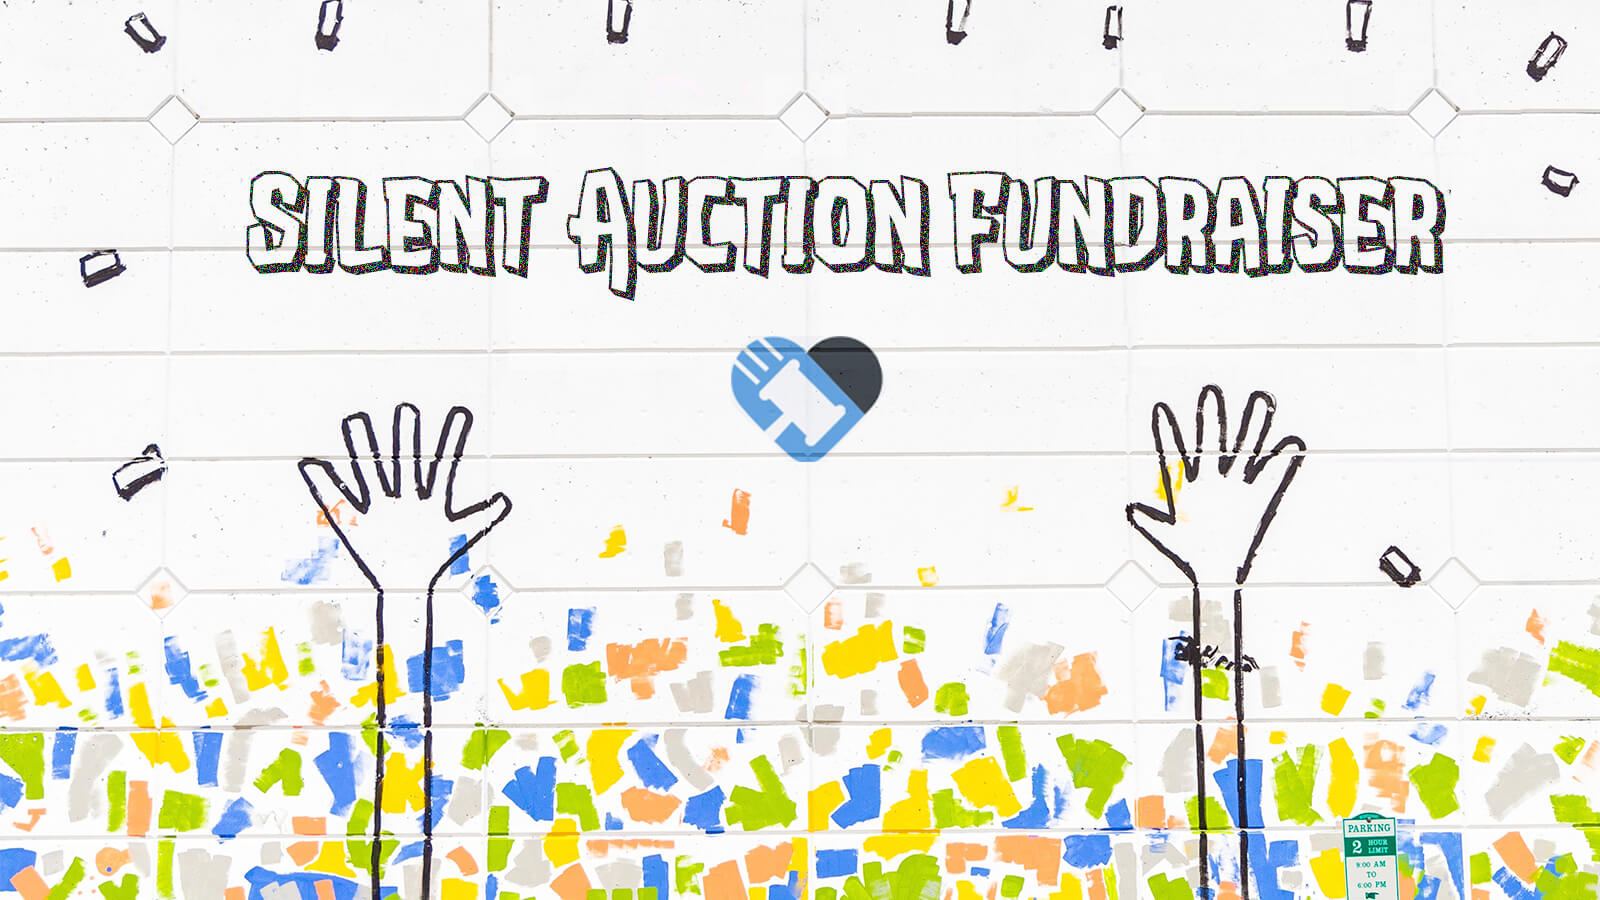 How to Run a Silent Auction Fundraiser